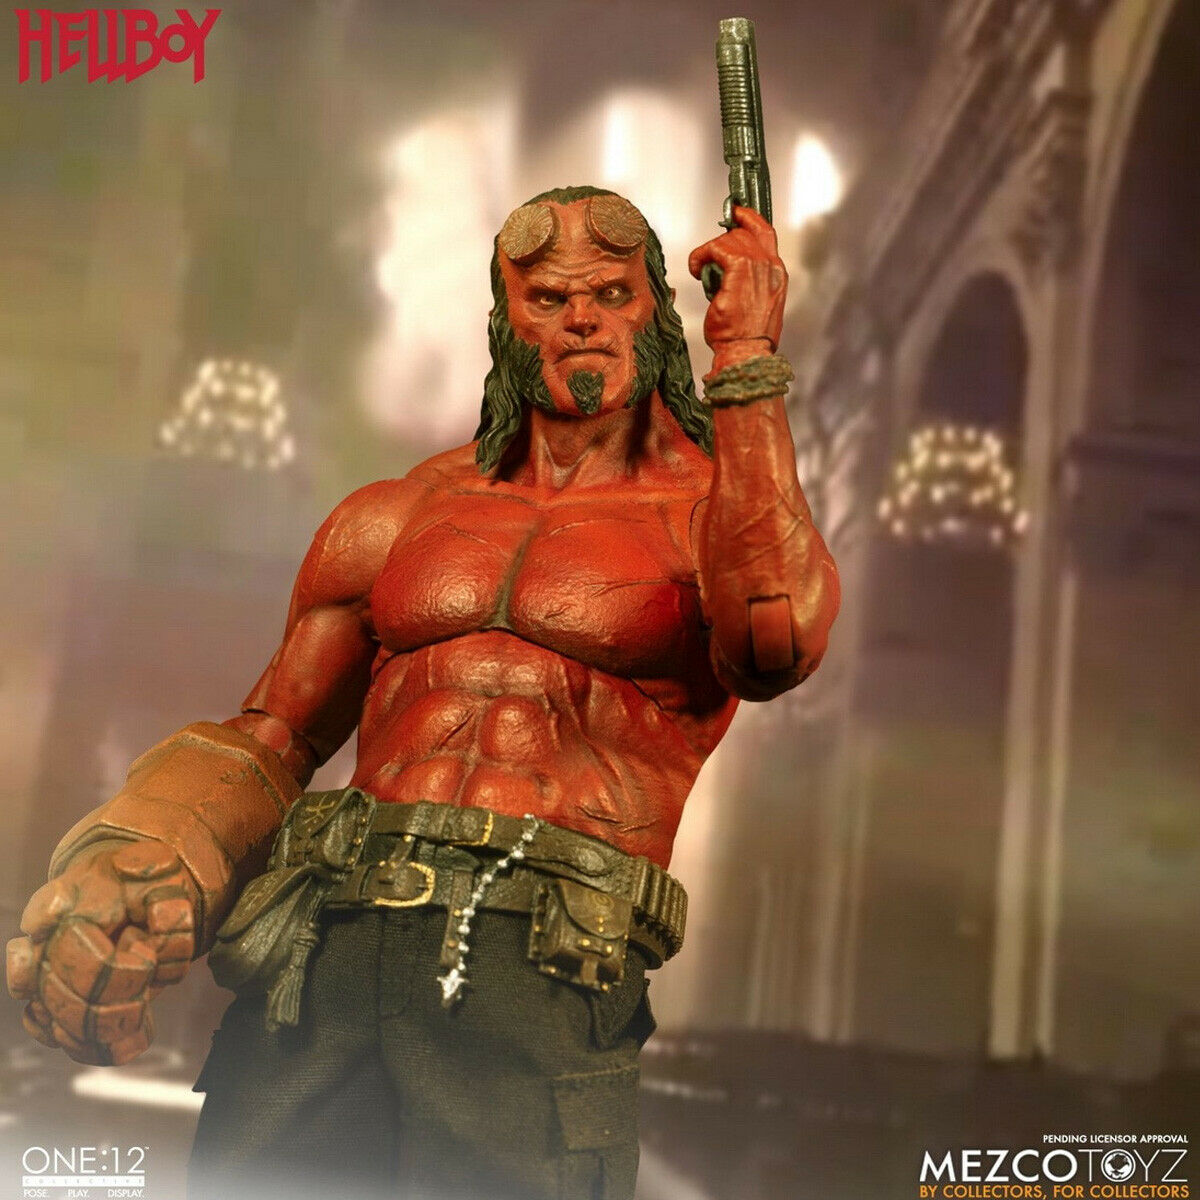 Mezco Spielzeugz 77540 1 12 Scale Hellboy 2019 Collectible Wirkung Figure Modell Spielzeugs